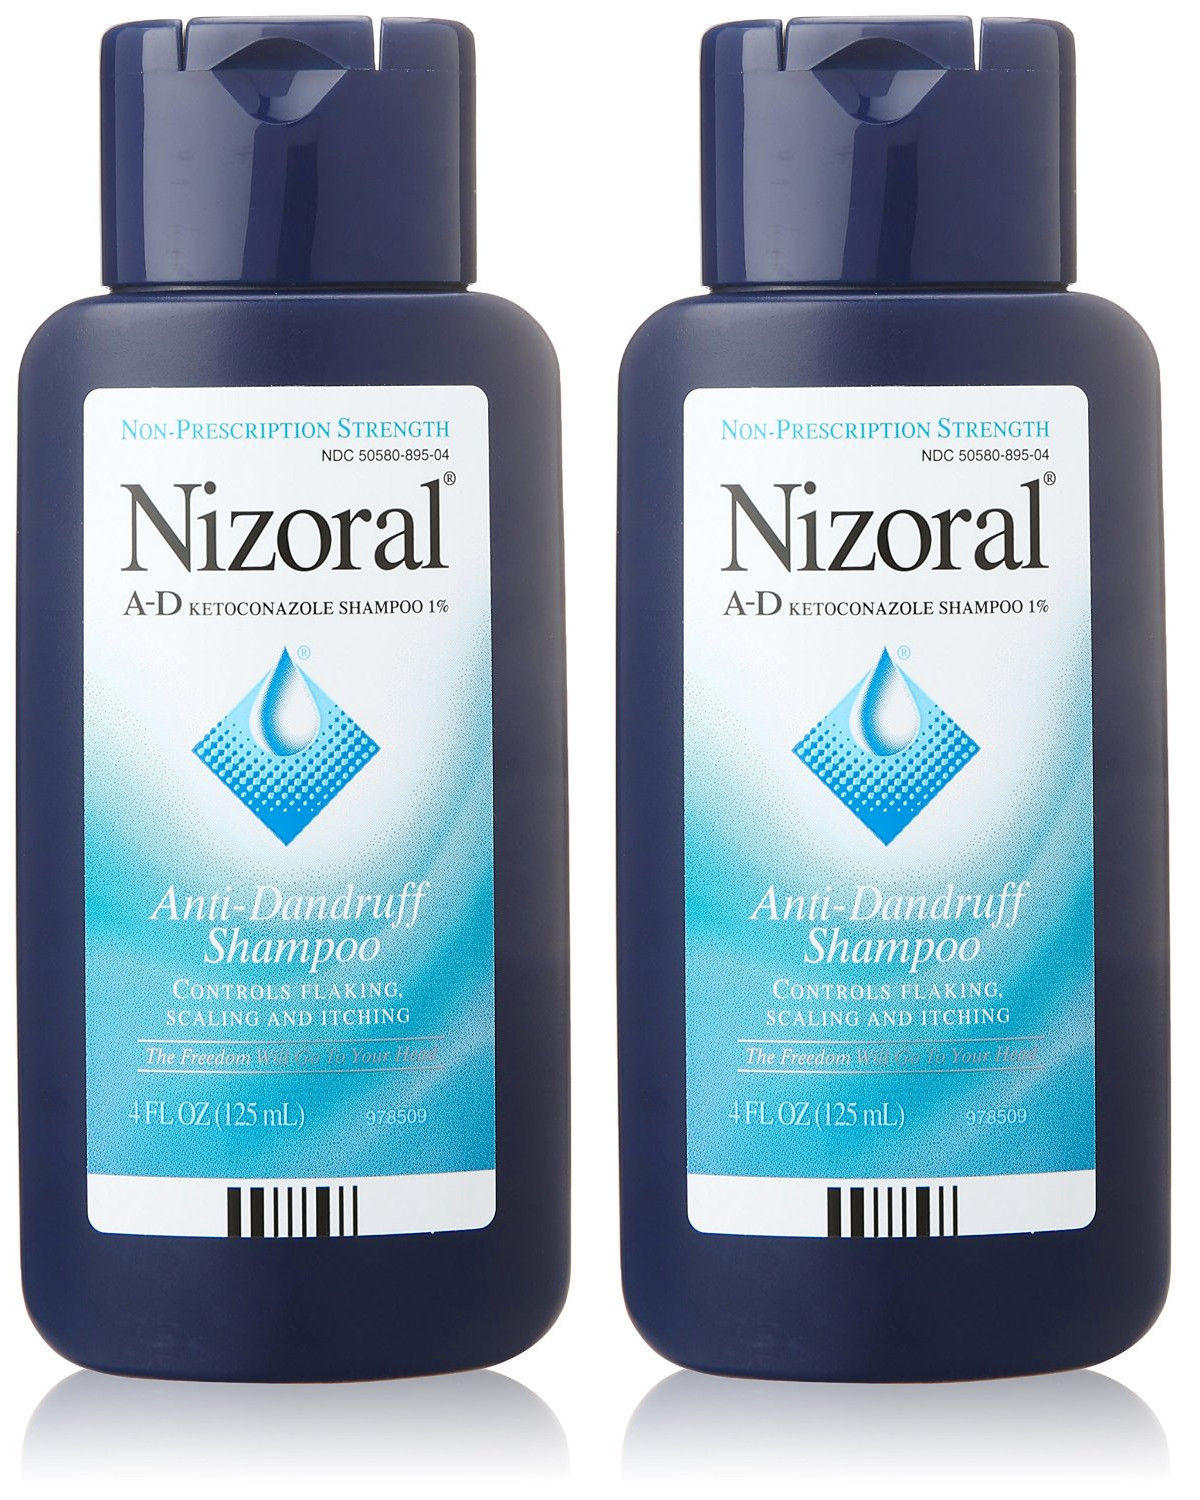 $8.5 2 Pk Nizoral AD Ketoconazole Non-Prescription Strength Anti-Dandruff Shampoo 4oz